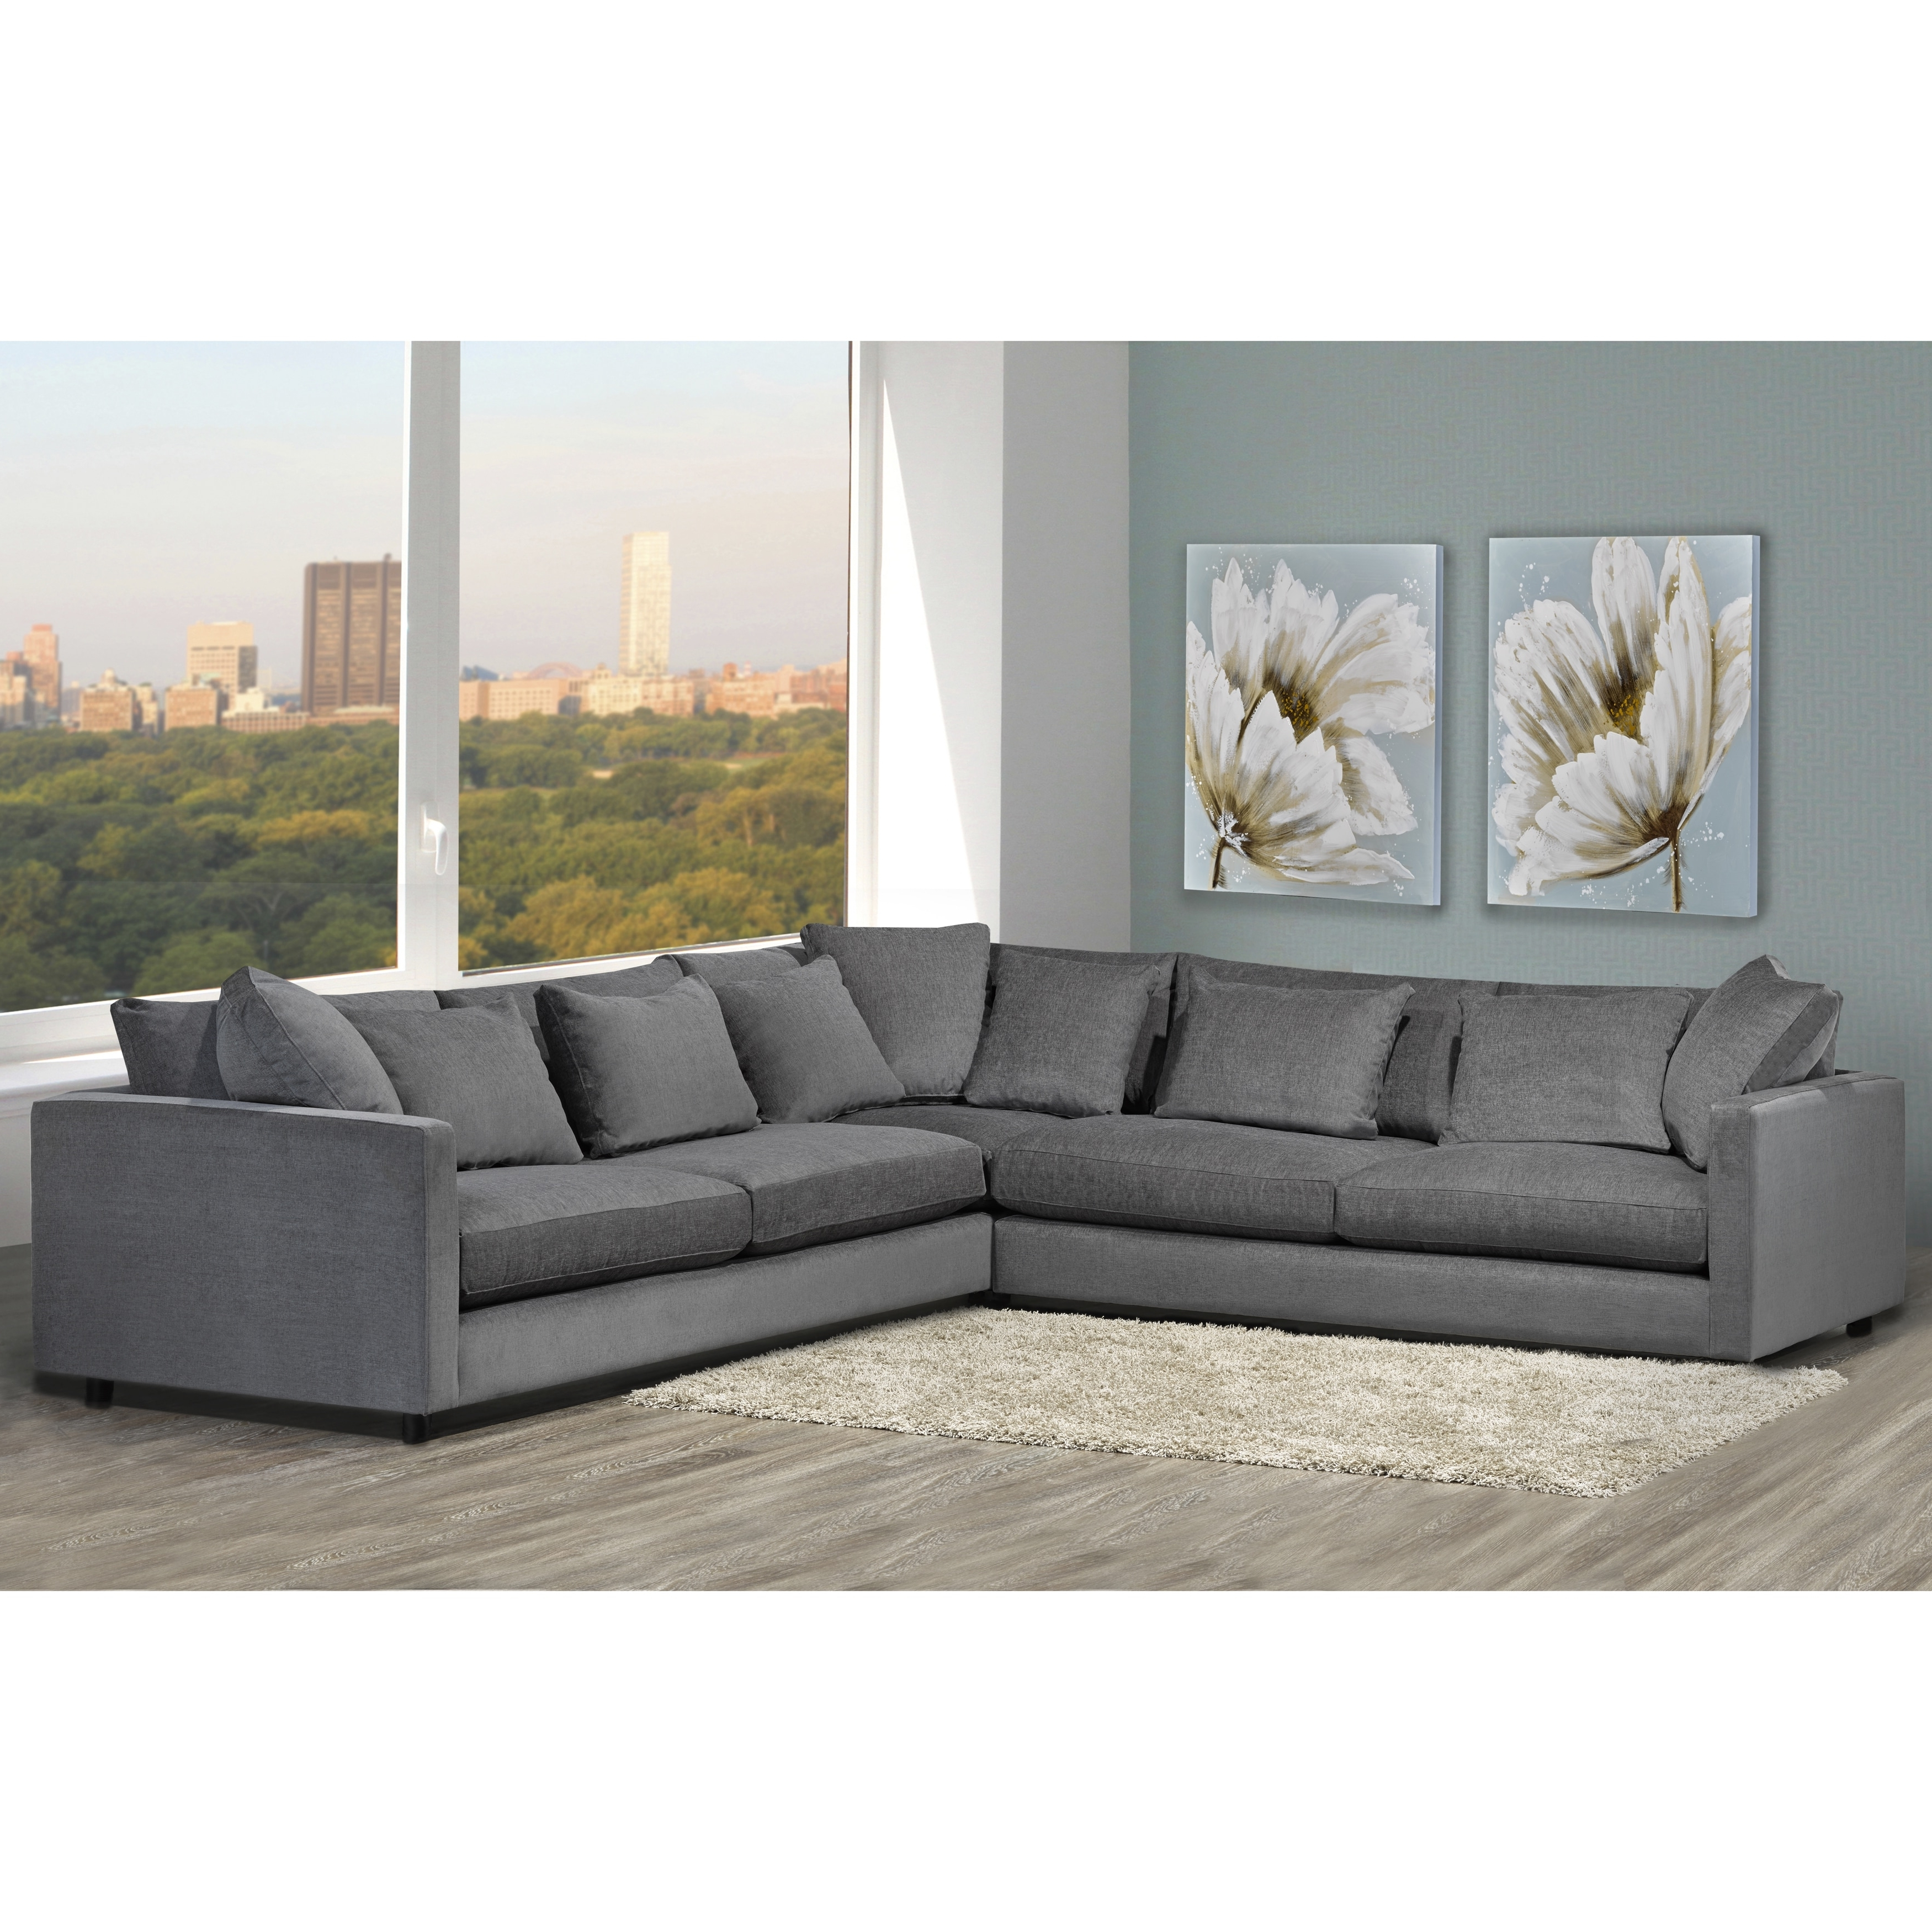 15 Collection Of Down Filled Sectional Sofas